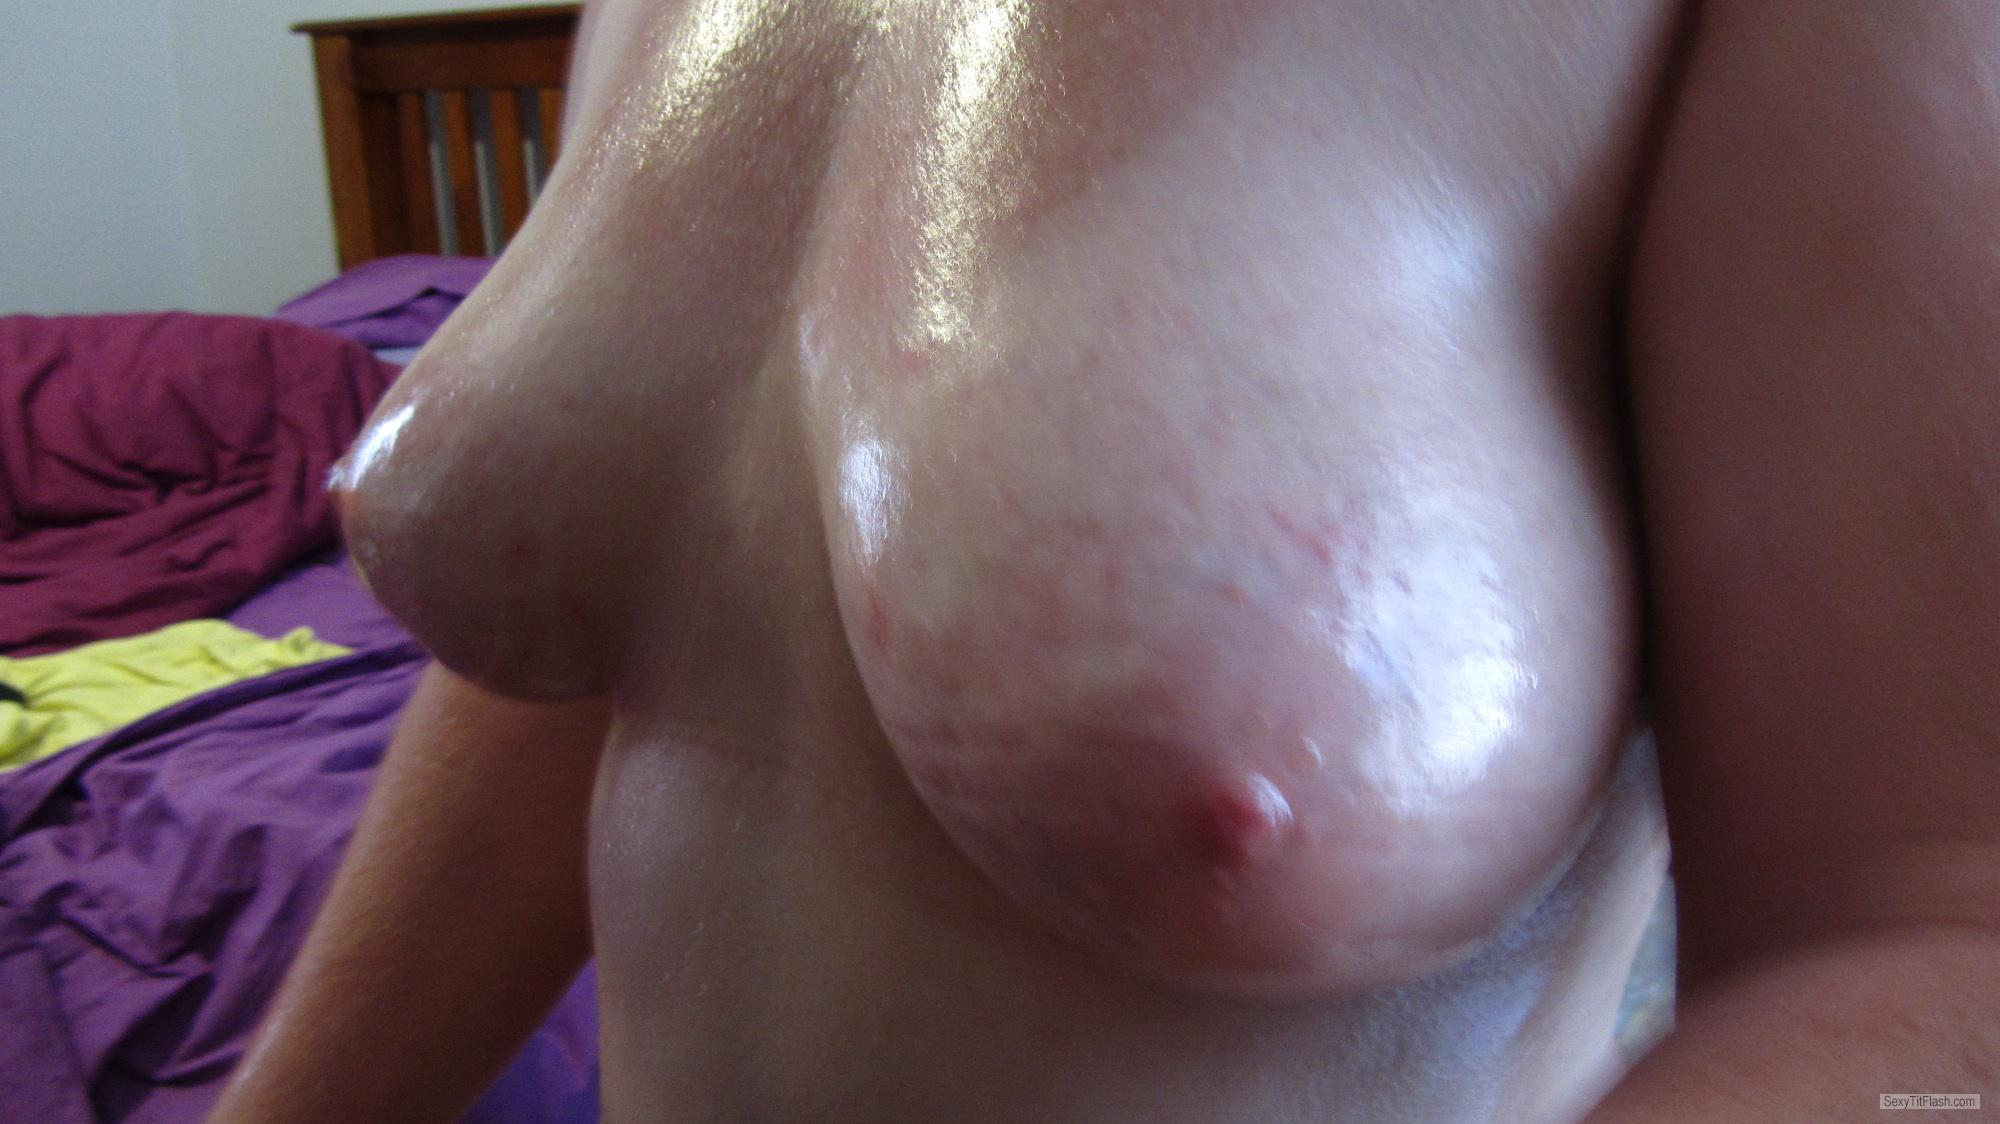 Tit Flash: My Medium Tits (Selfie) - Jen from South Africa